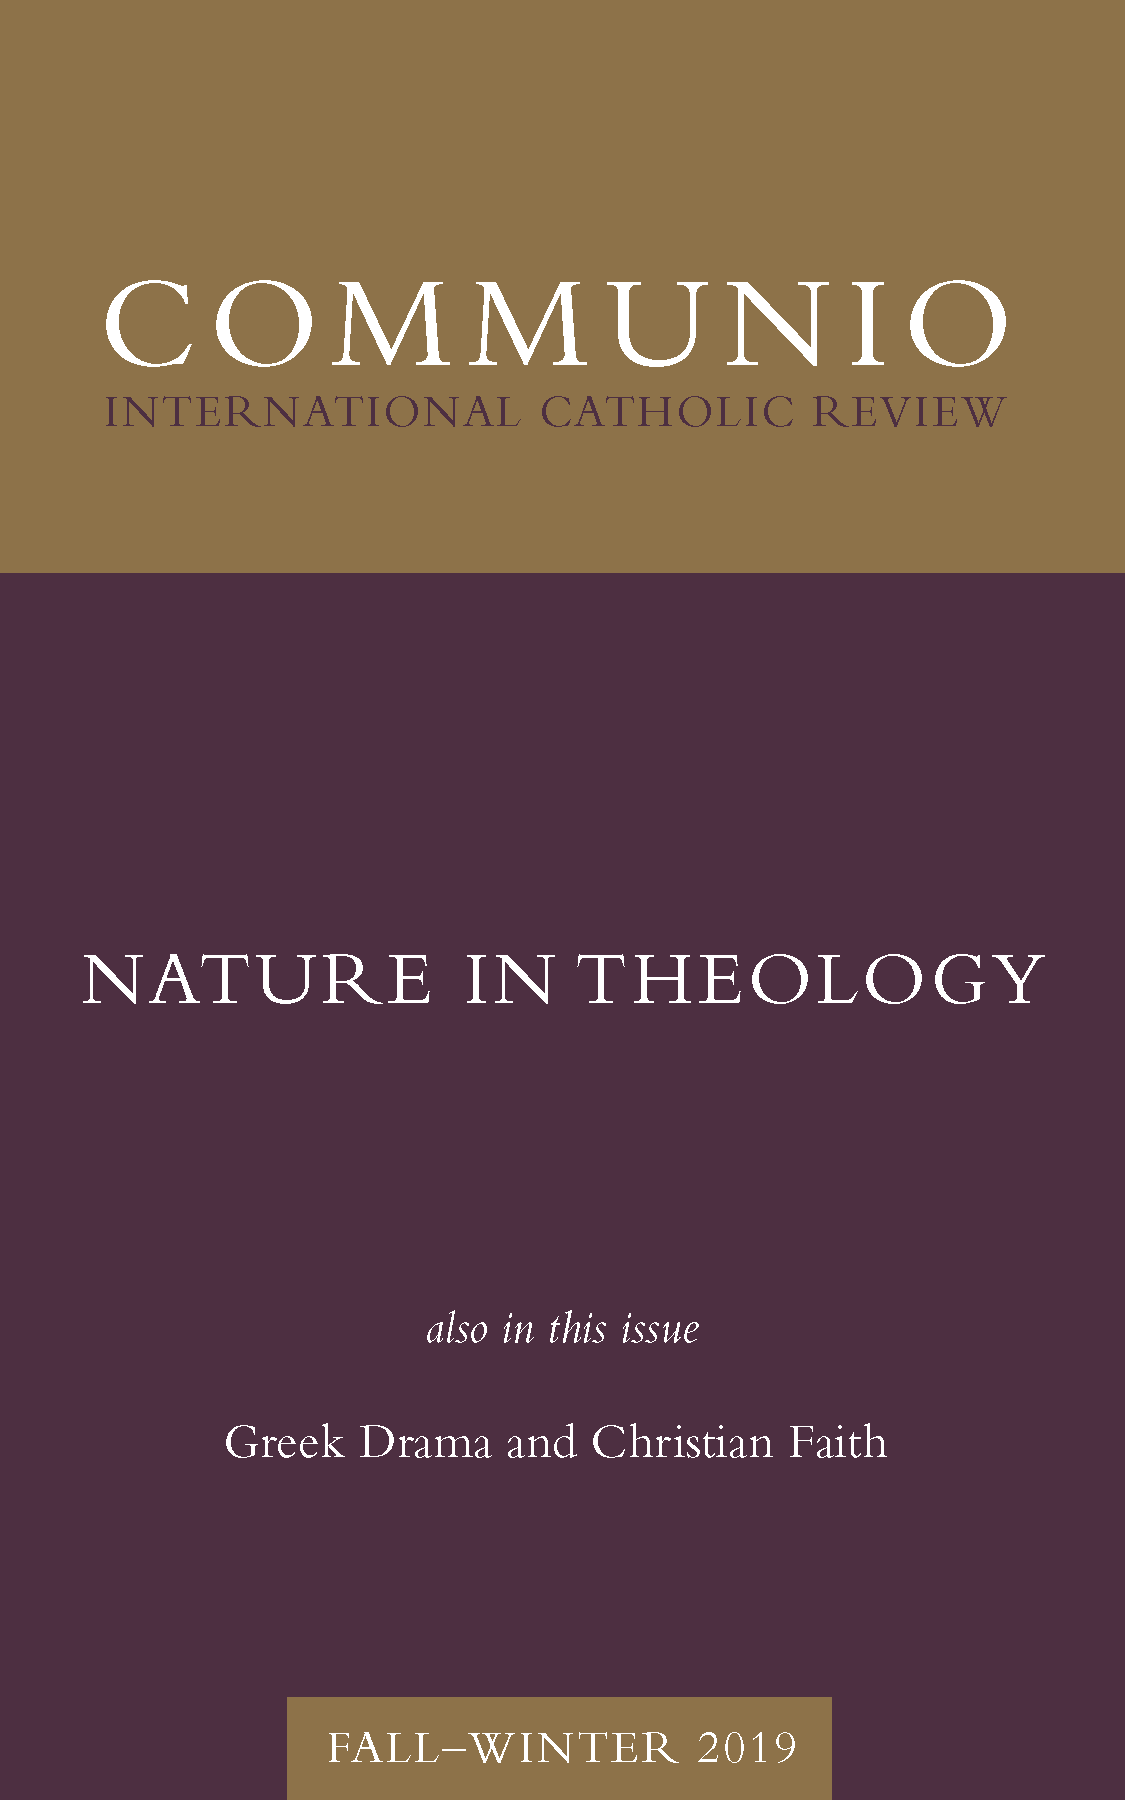 Communio - Fall-Winter 2019 - Nature in Theology